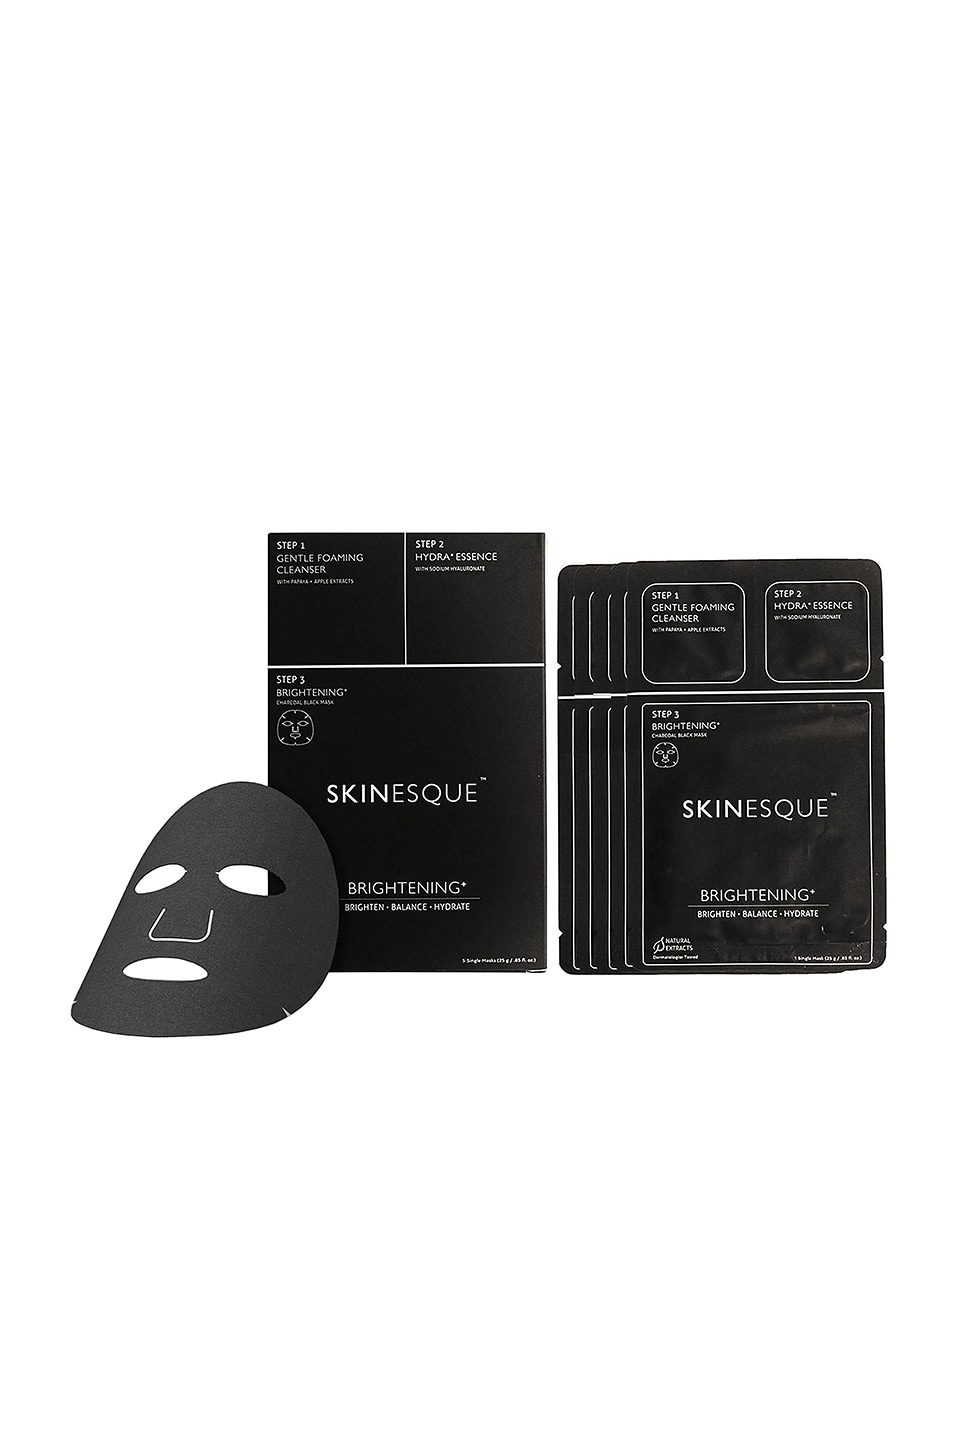 SKINESQUE 3 Step Brightening And Charcoal Mask in N/A